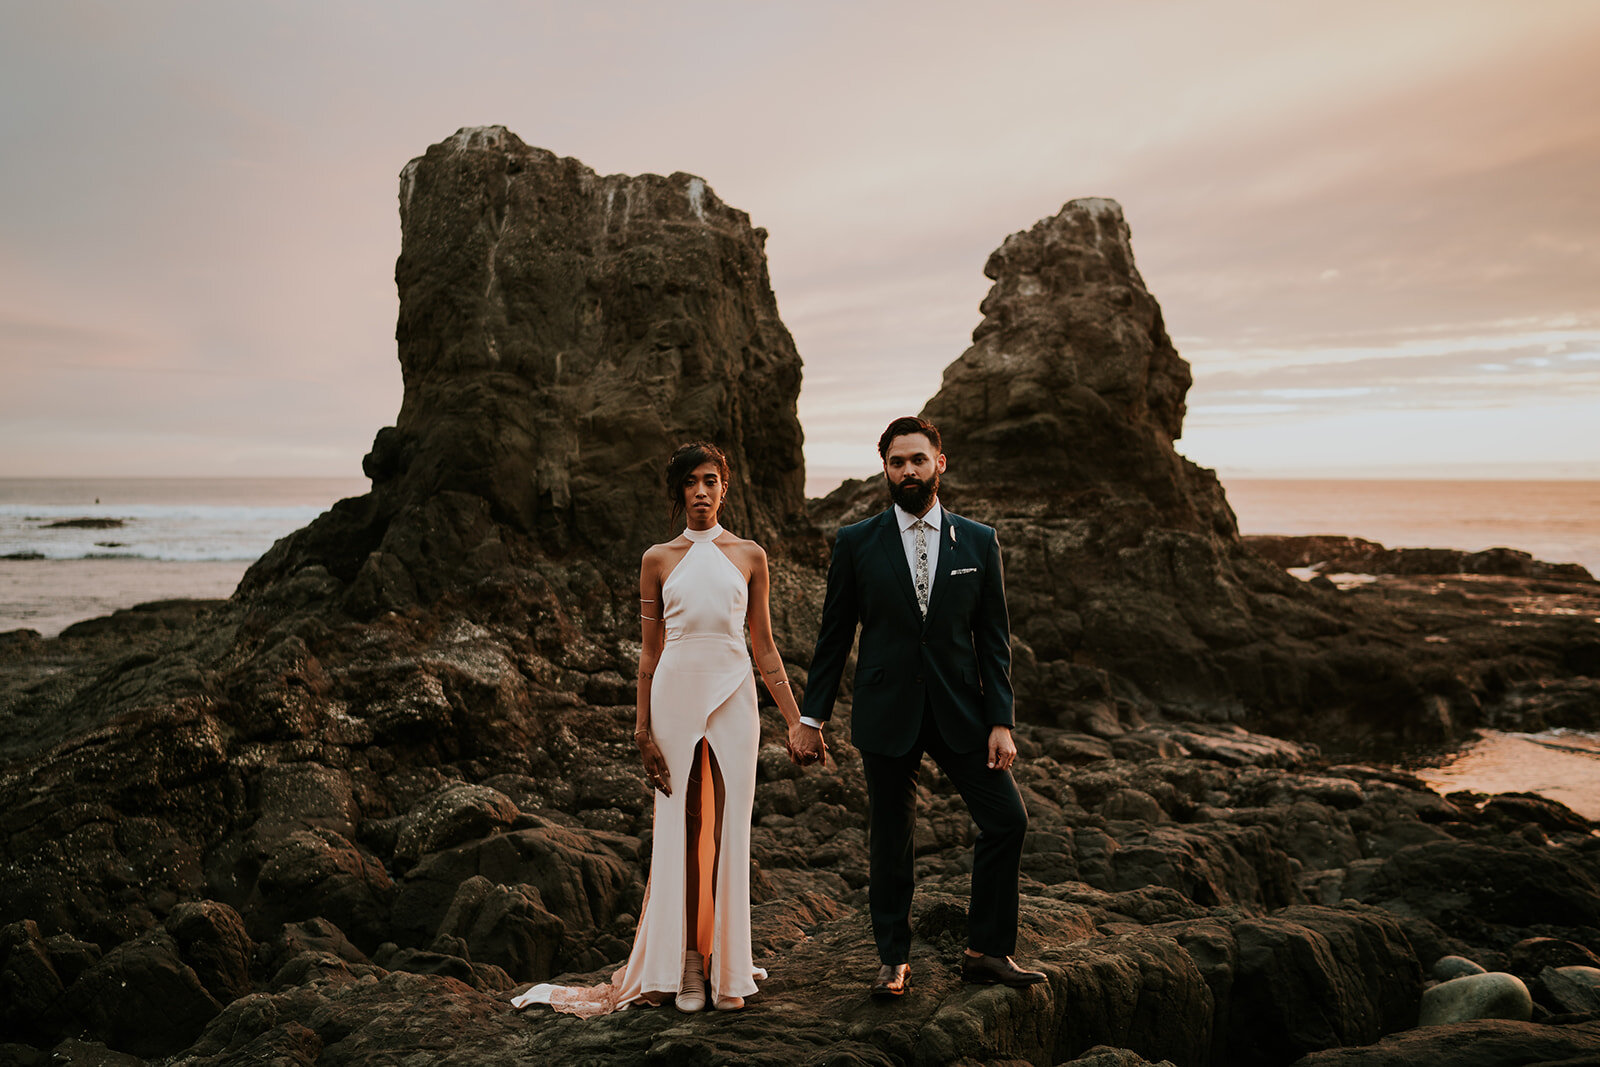 wedding vendors in rosarito